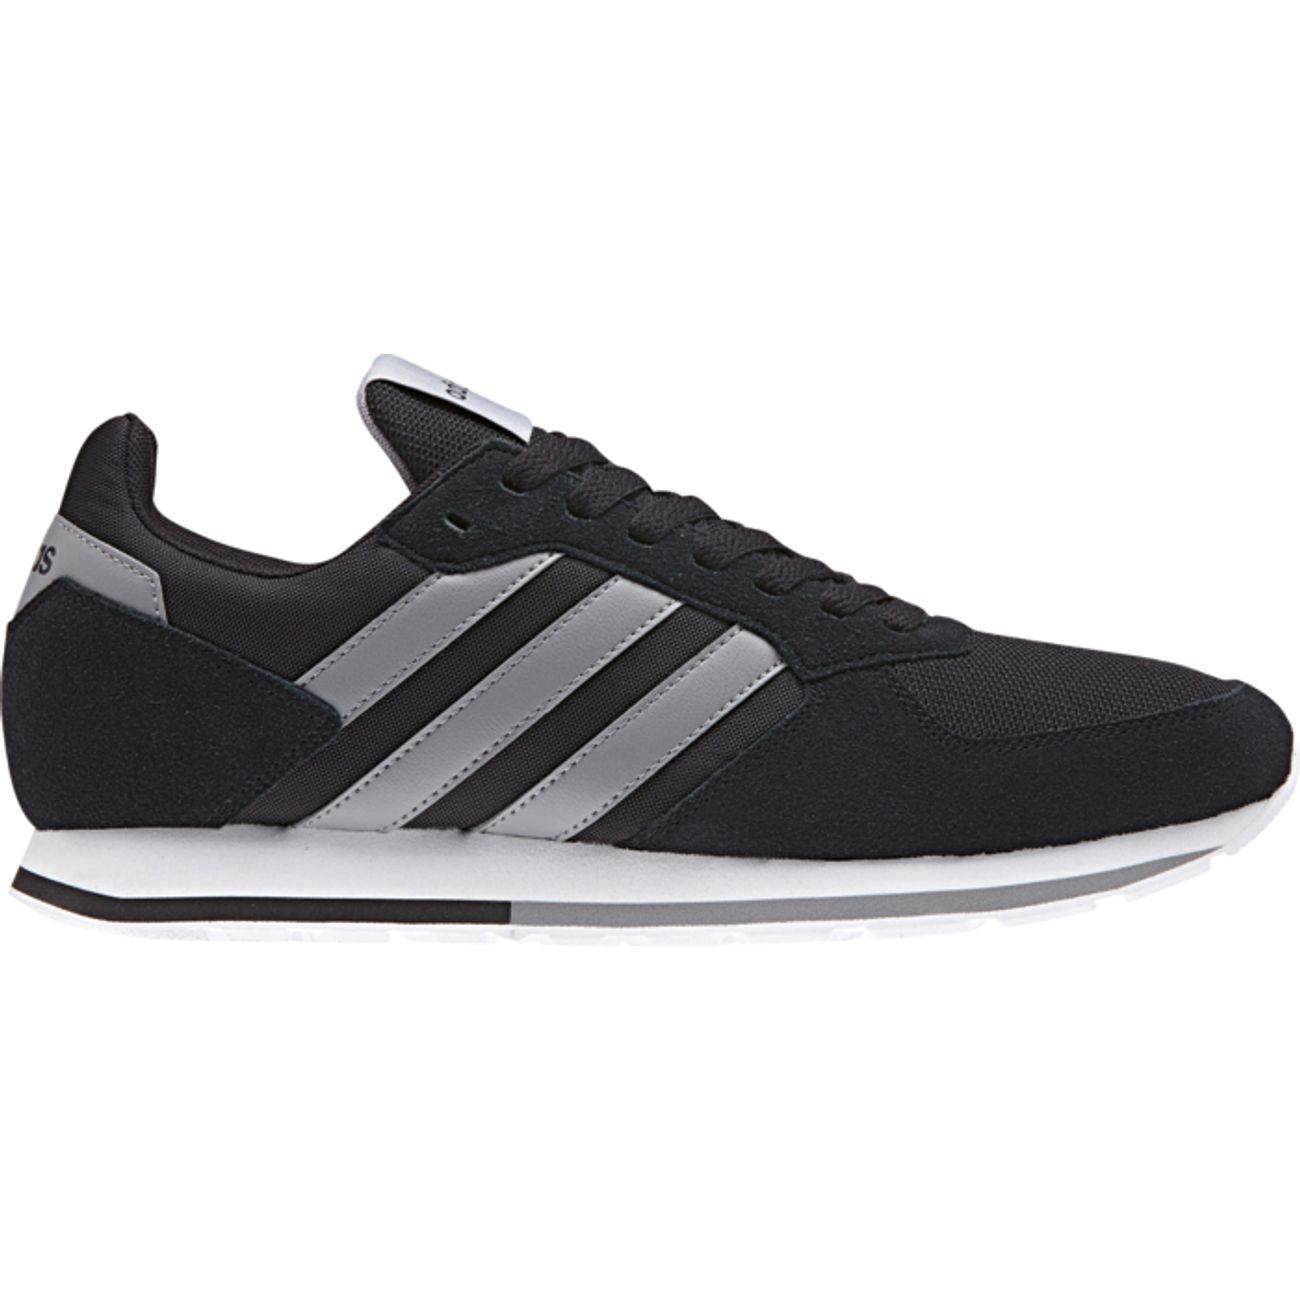 buy online 3f104 e1838 CHAUSSURES BASSES homme ADIDAS BTE 8K